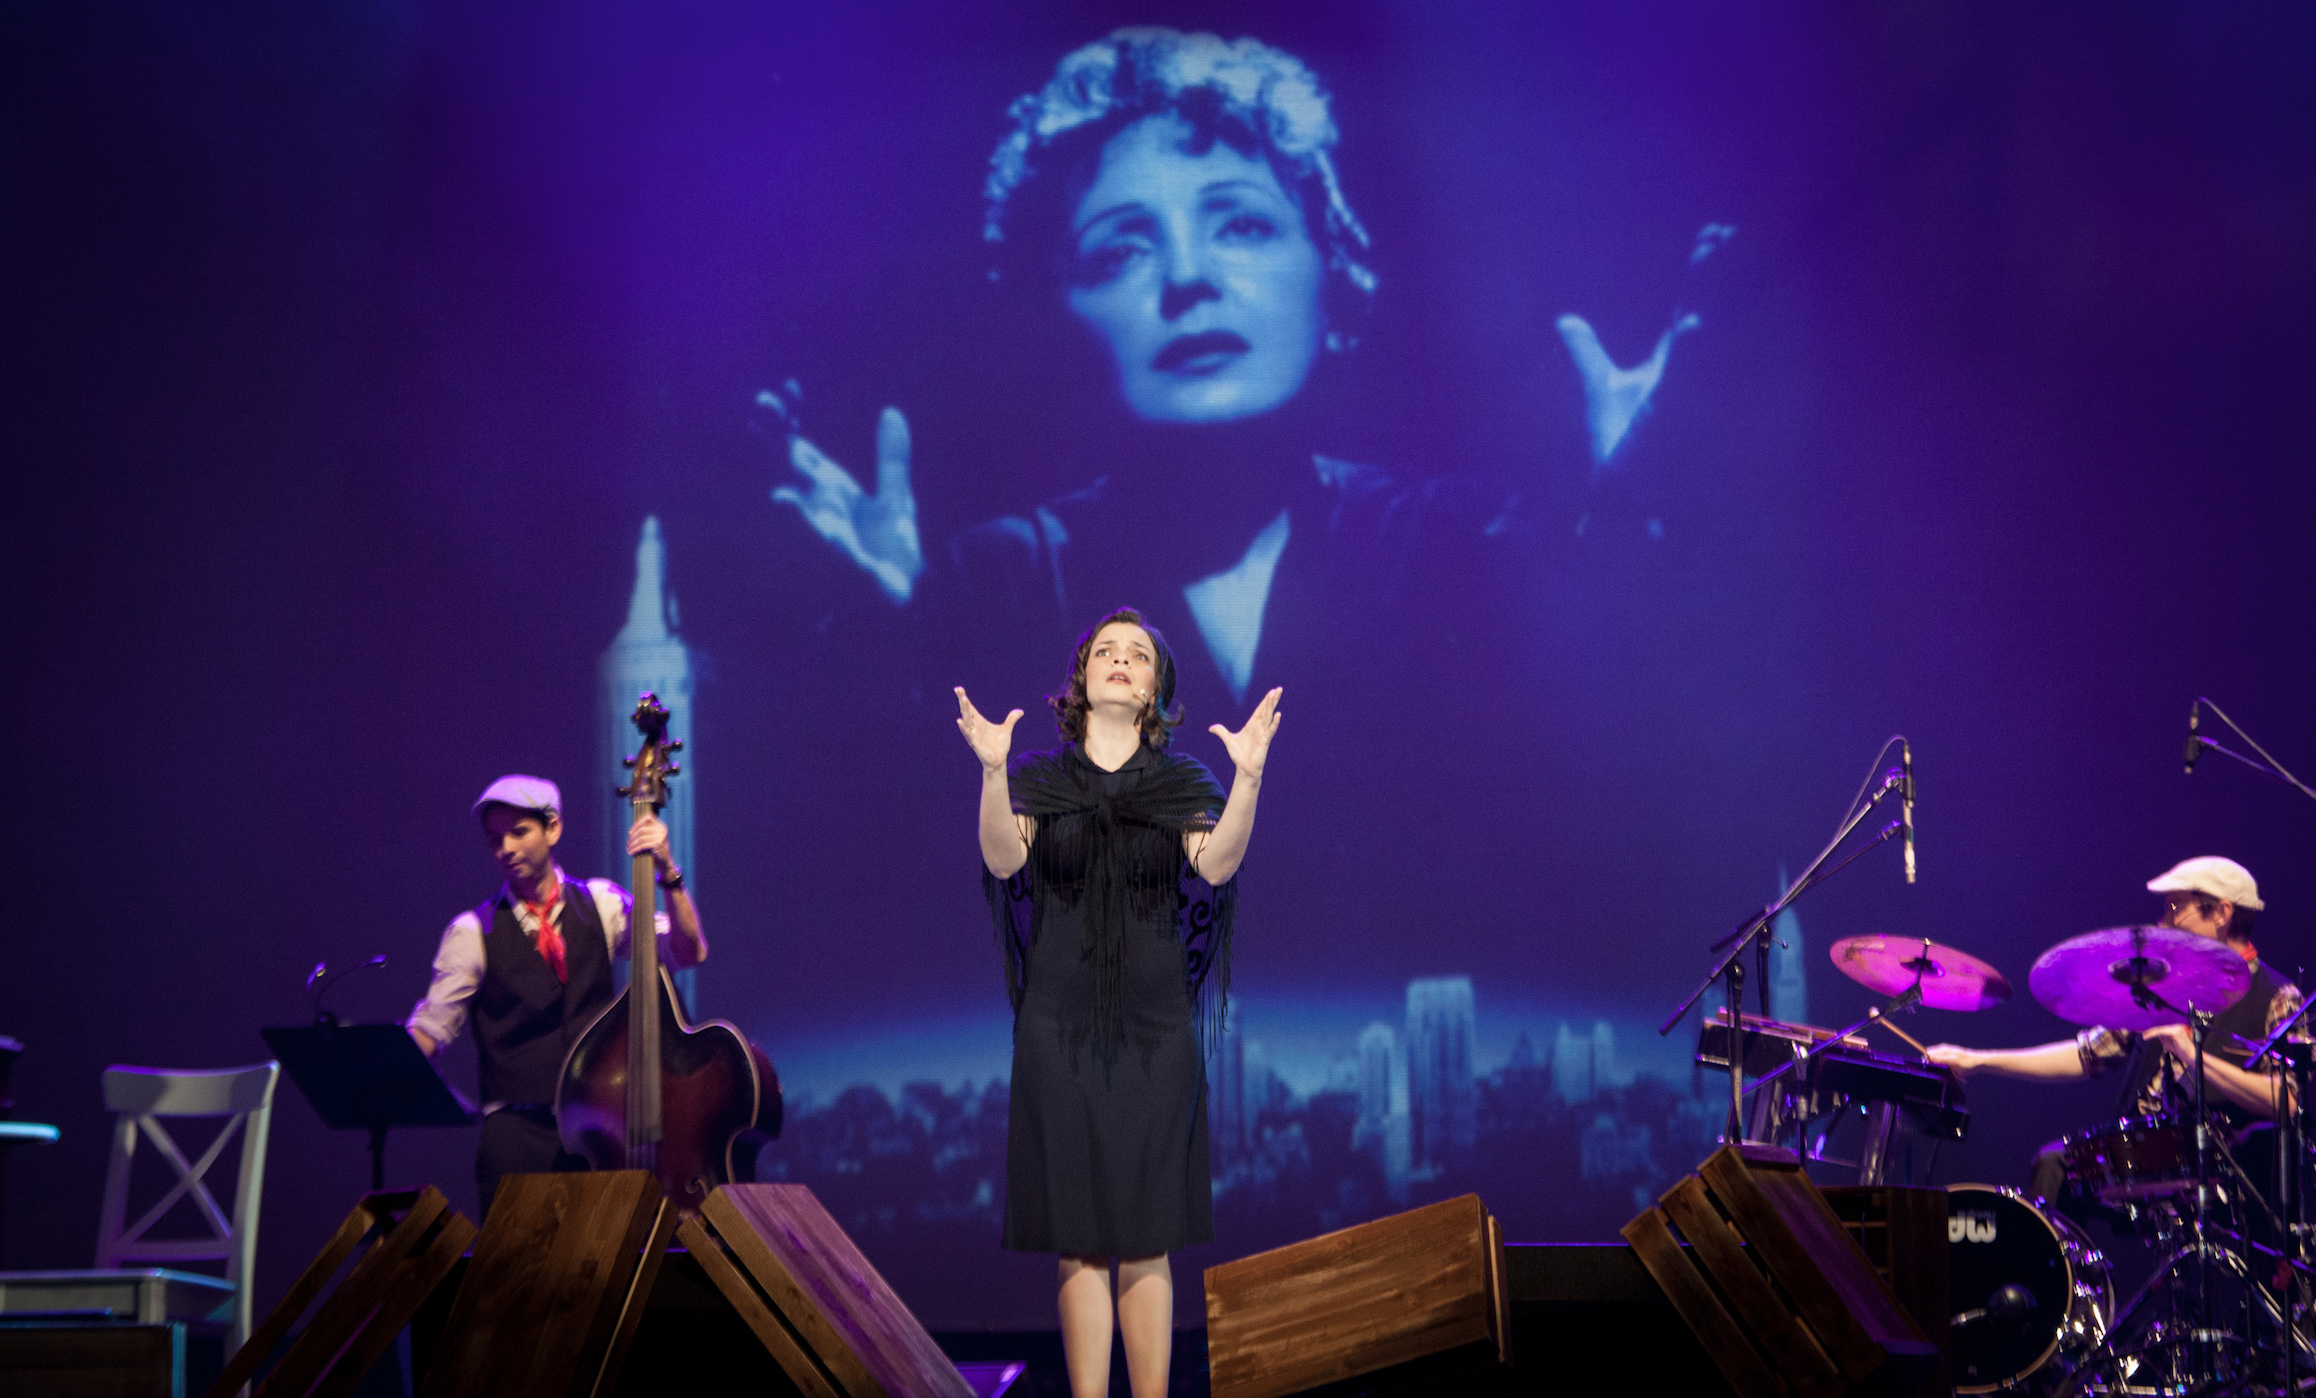 Anne Carrere in Piaf! The Show- Extraordinaire